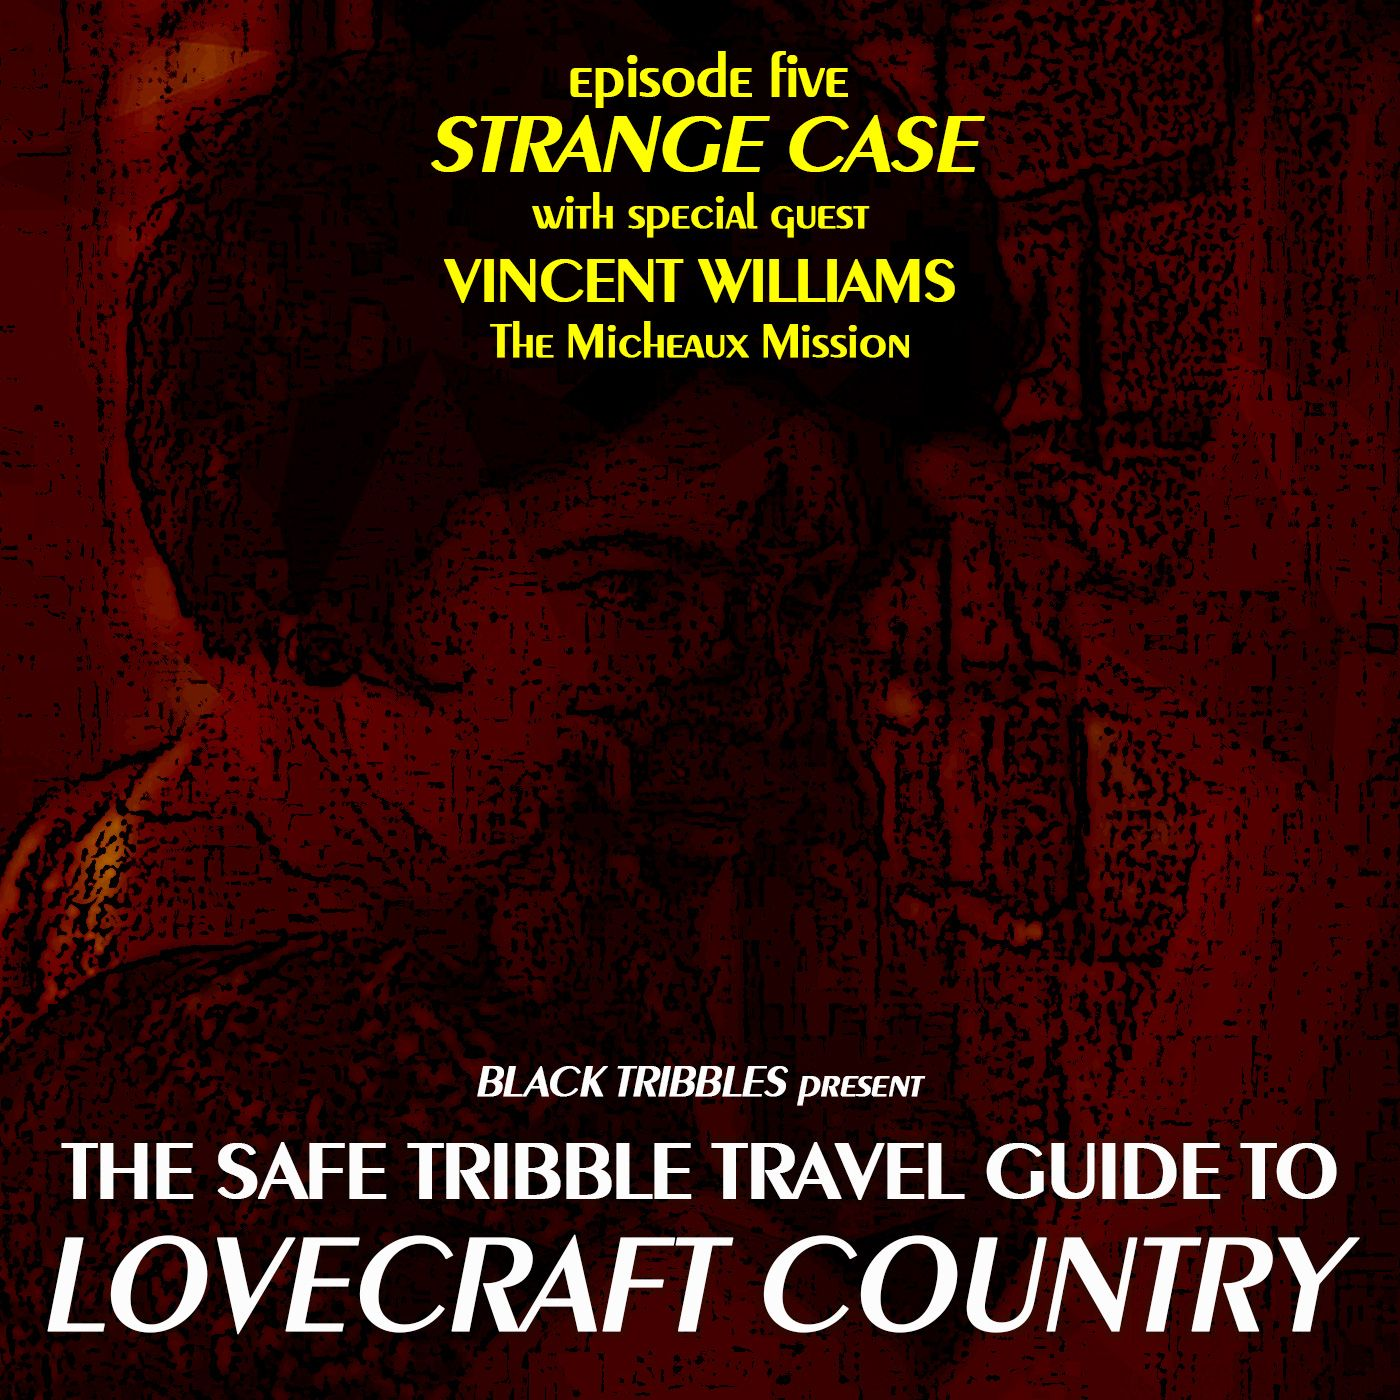 Ep. 5 Strange Case - The Safe Tribble Travel Guide to Lovecraft Country